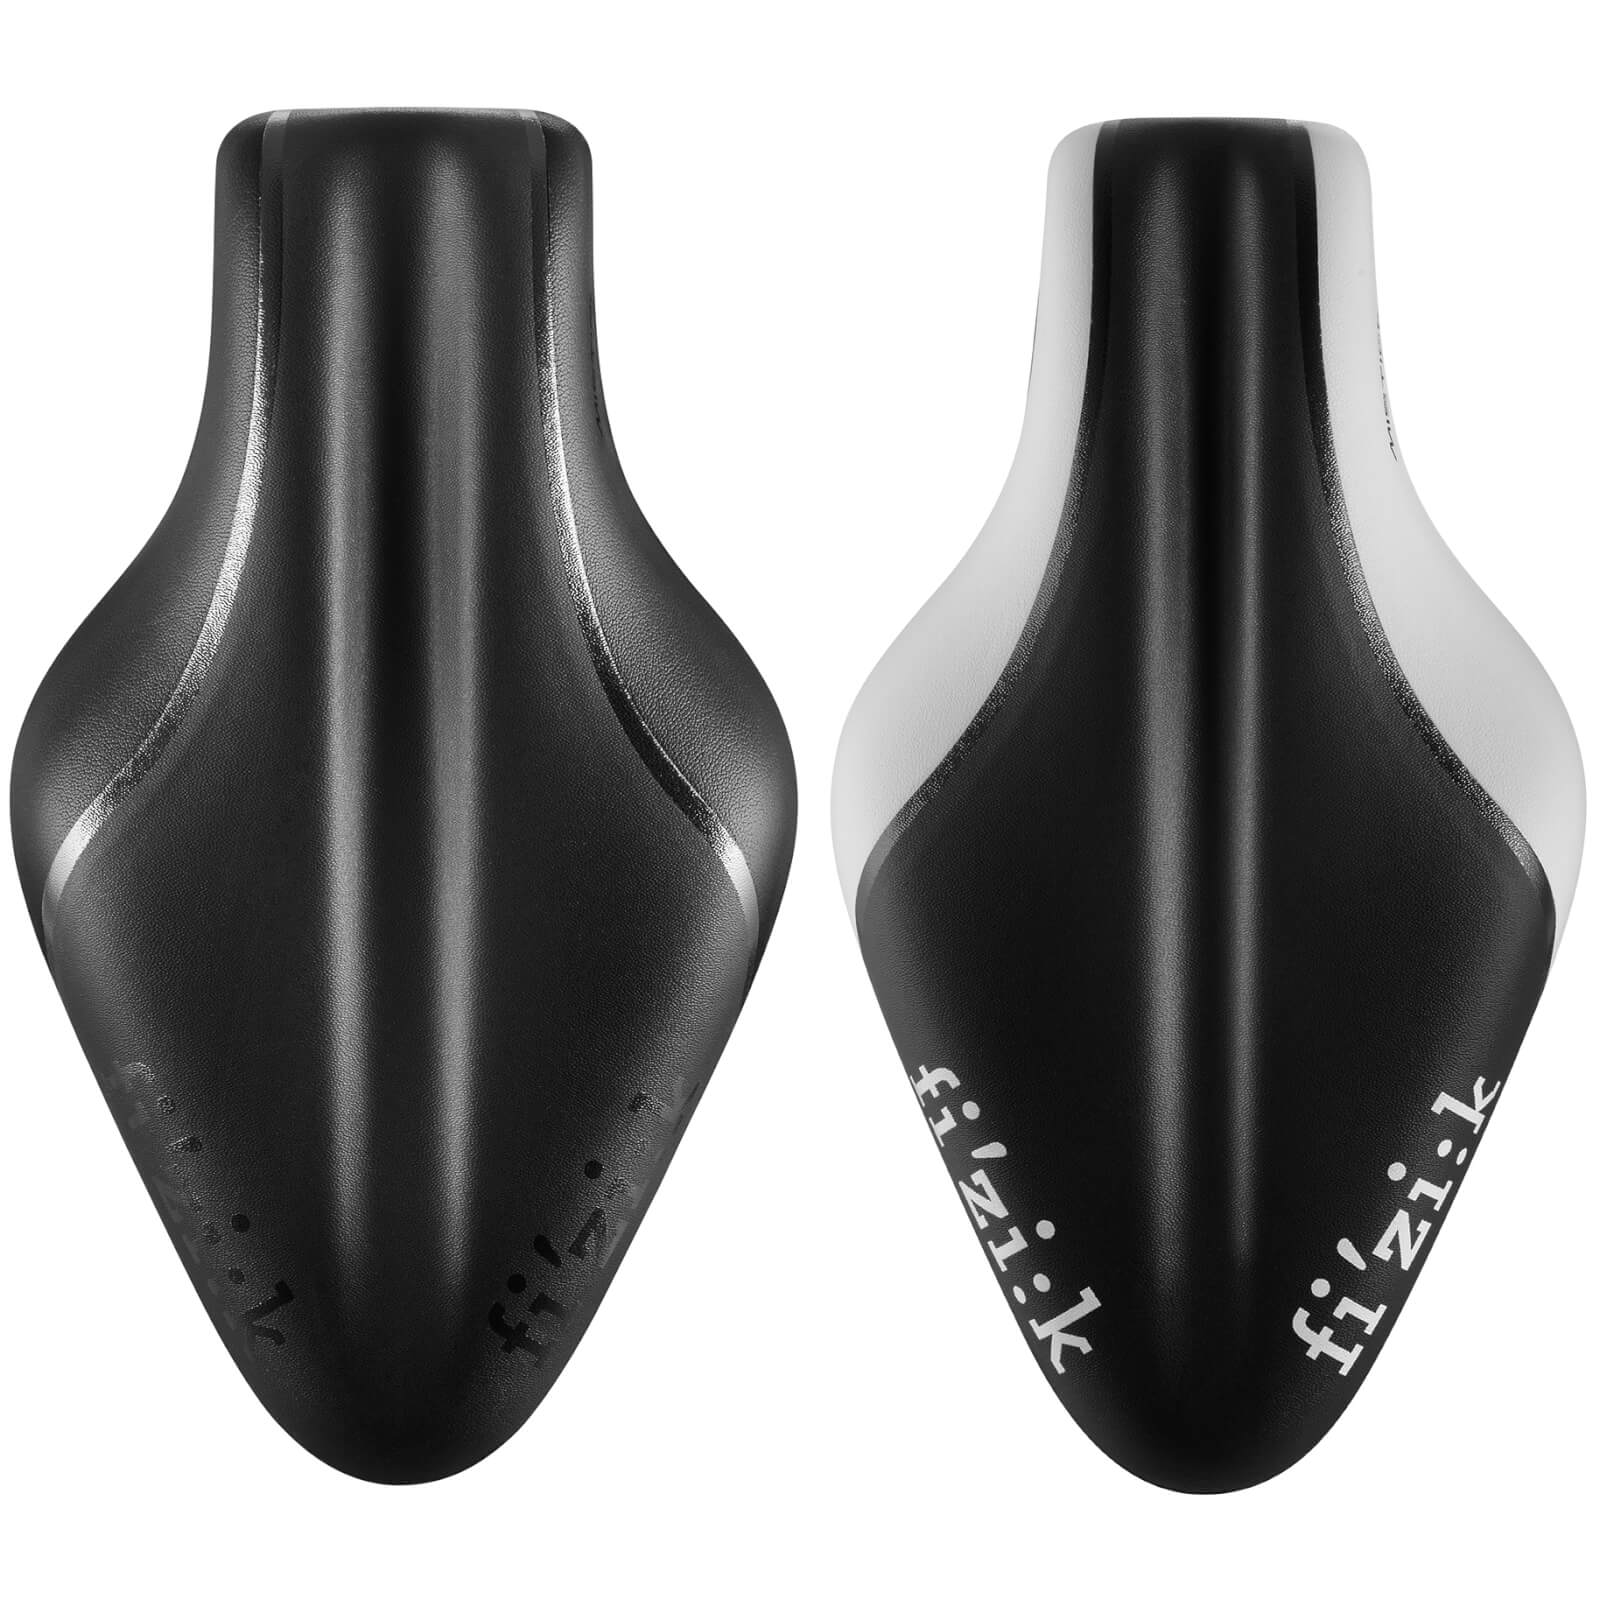 Fizik Mistica Carbon Braided Saddle